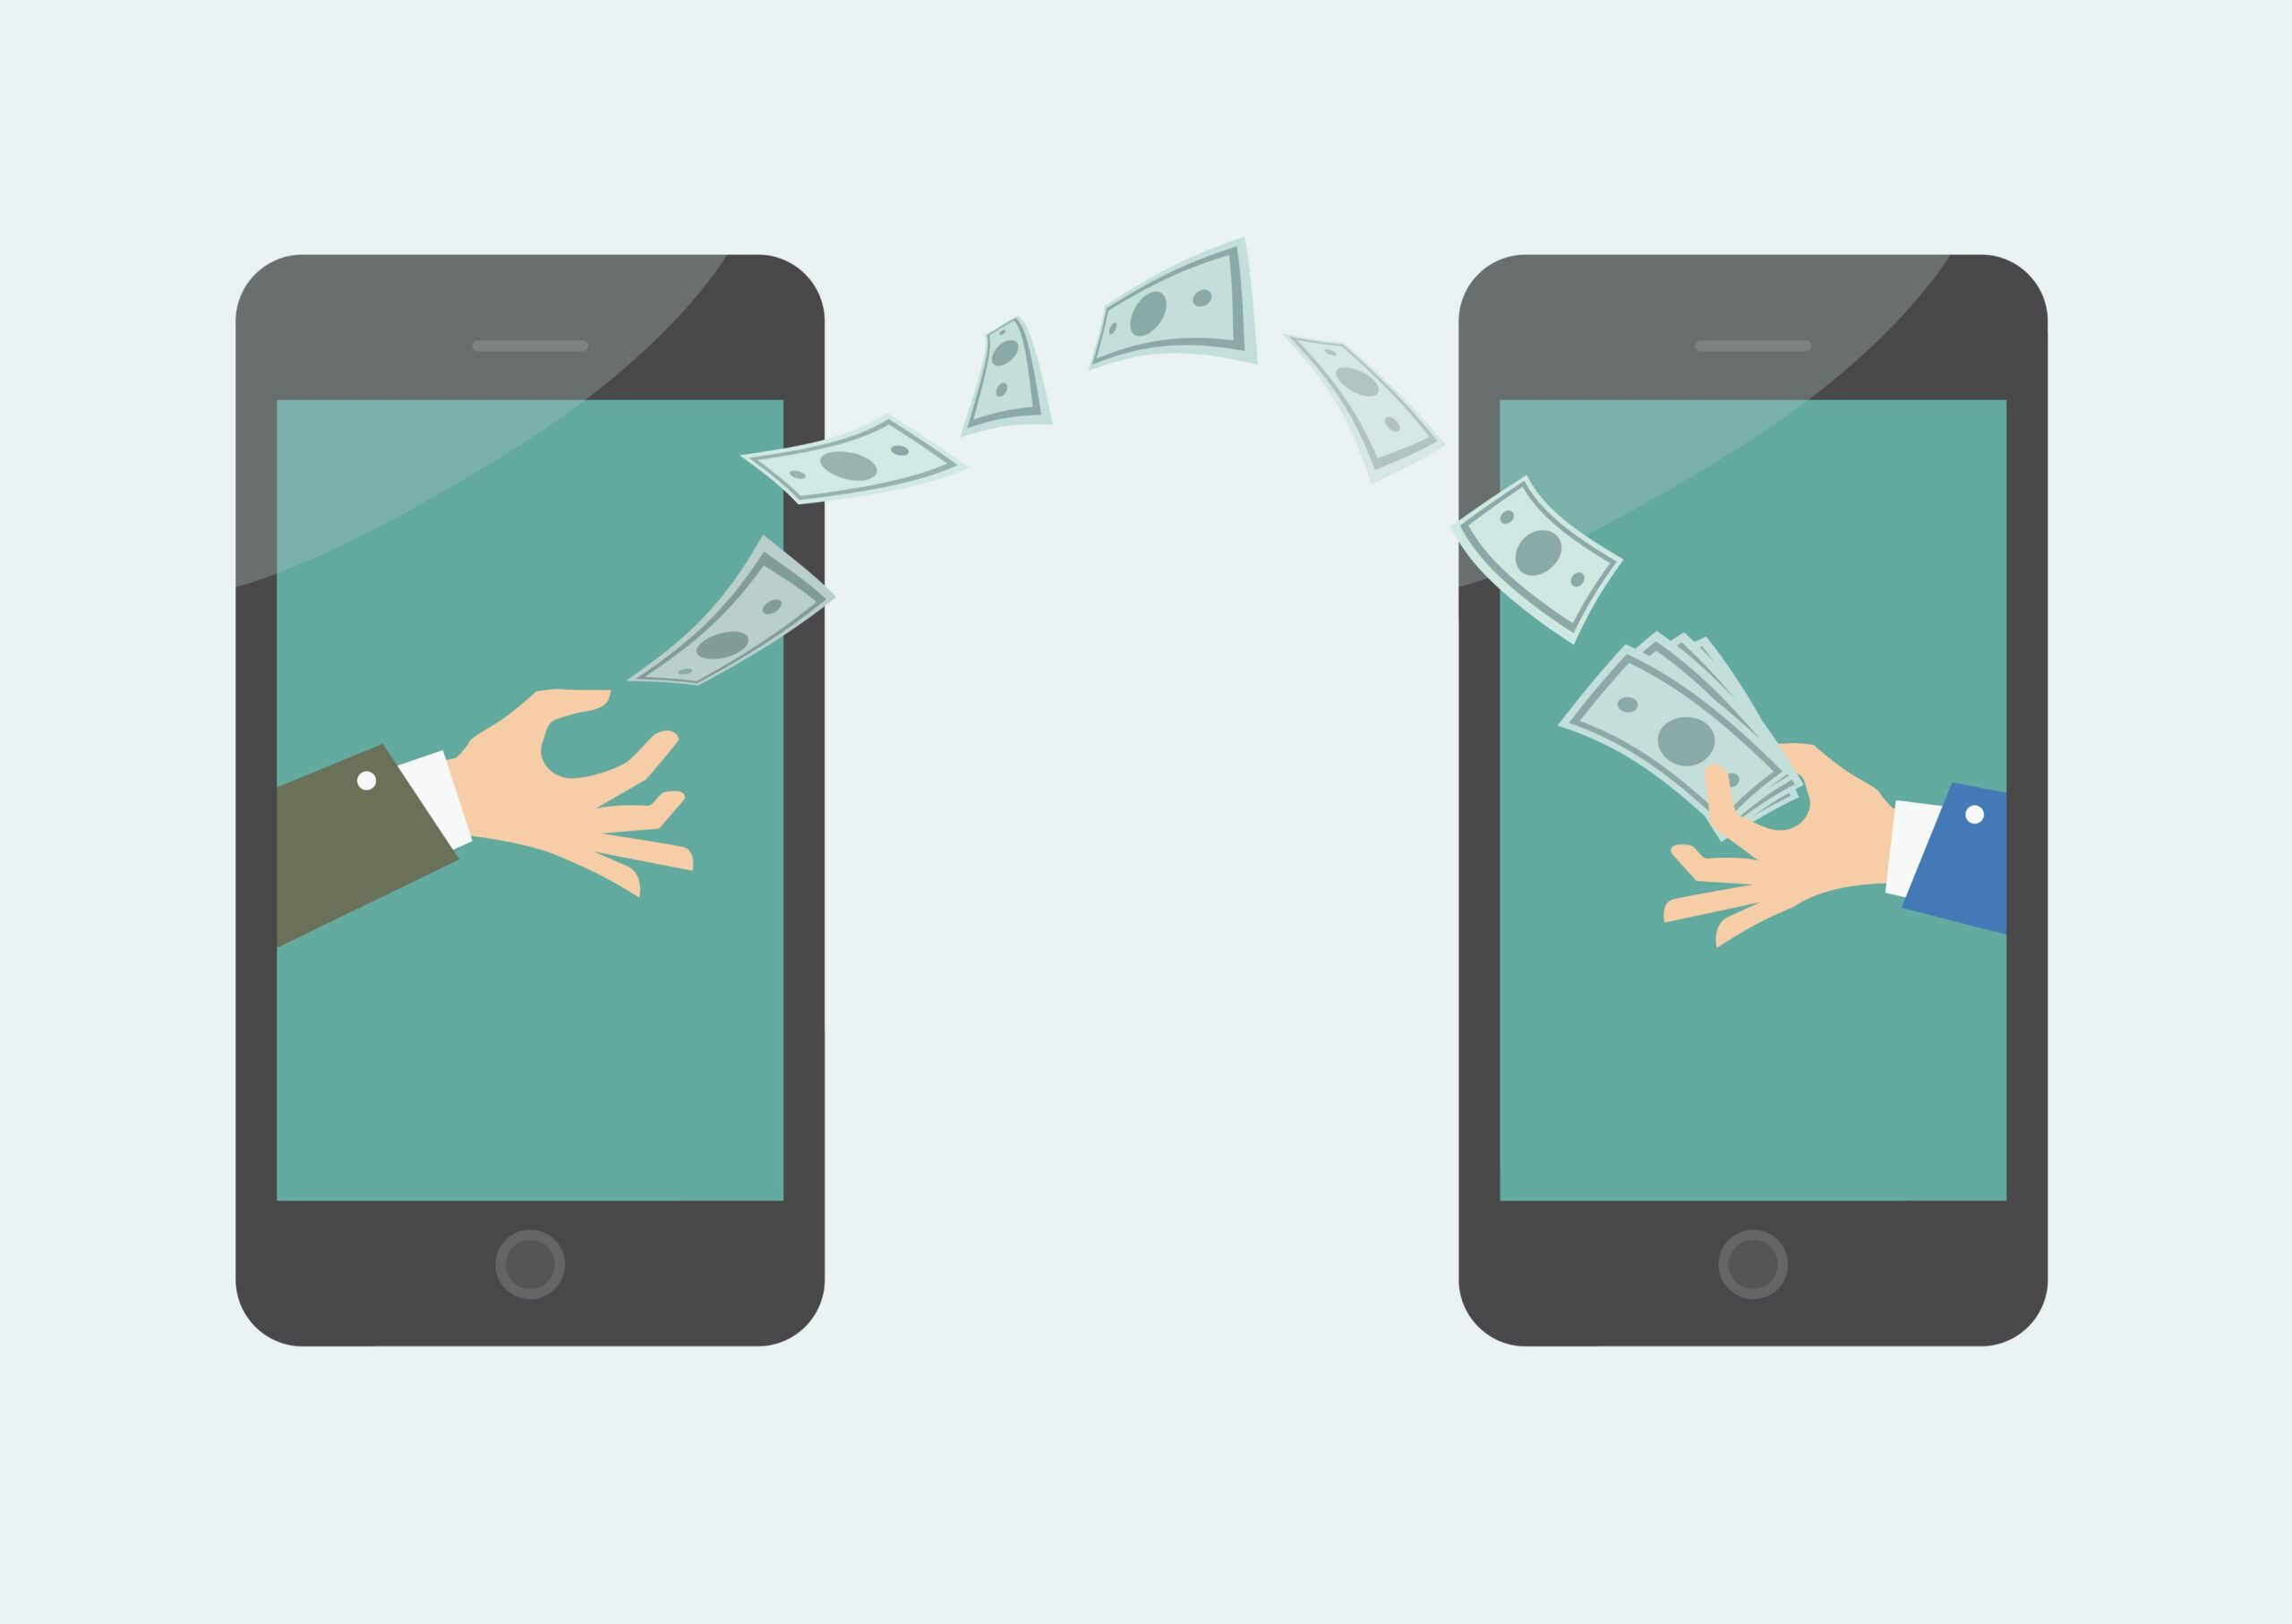 Do Mobile Money Service an effective instrument to further growth of the Small and Medium-Size Enterprises (SMEs)?